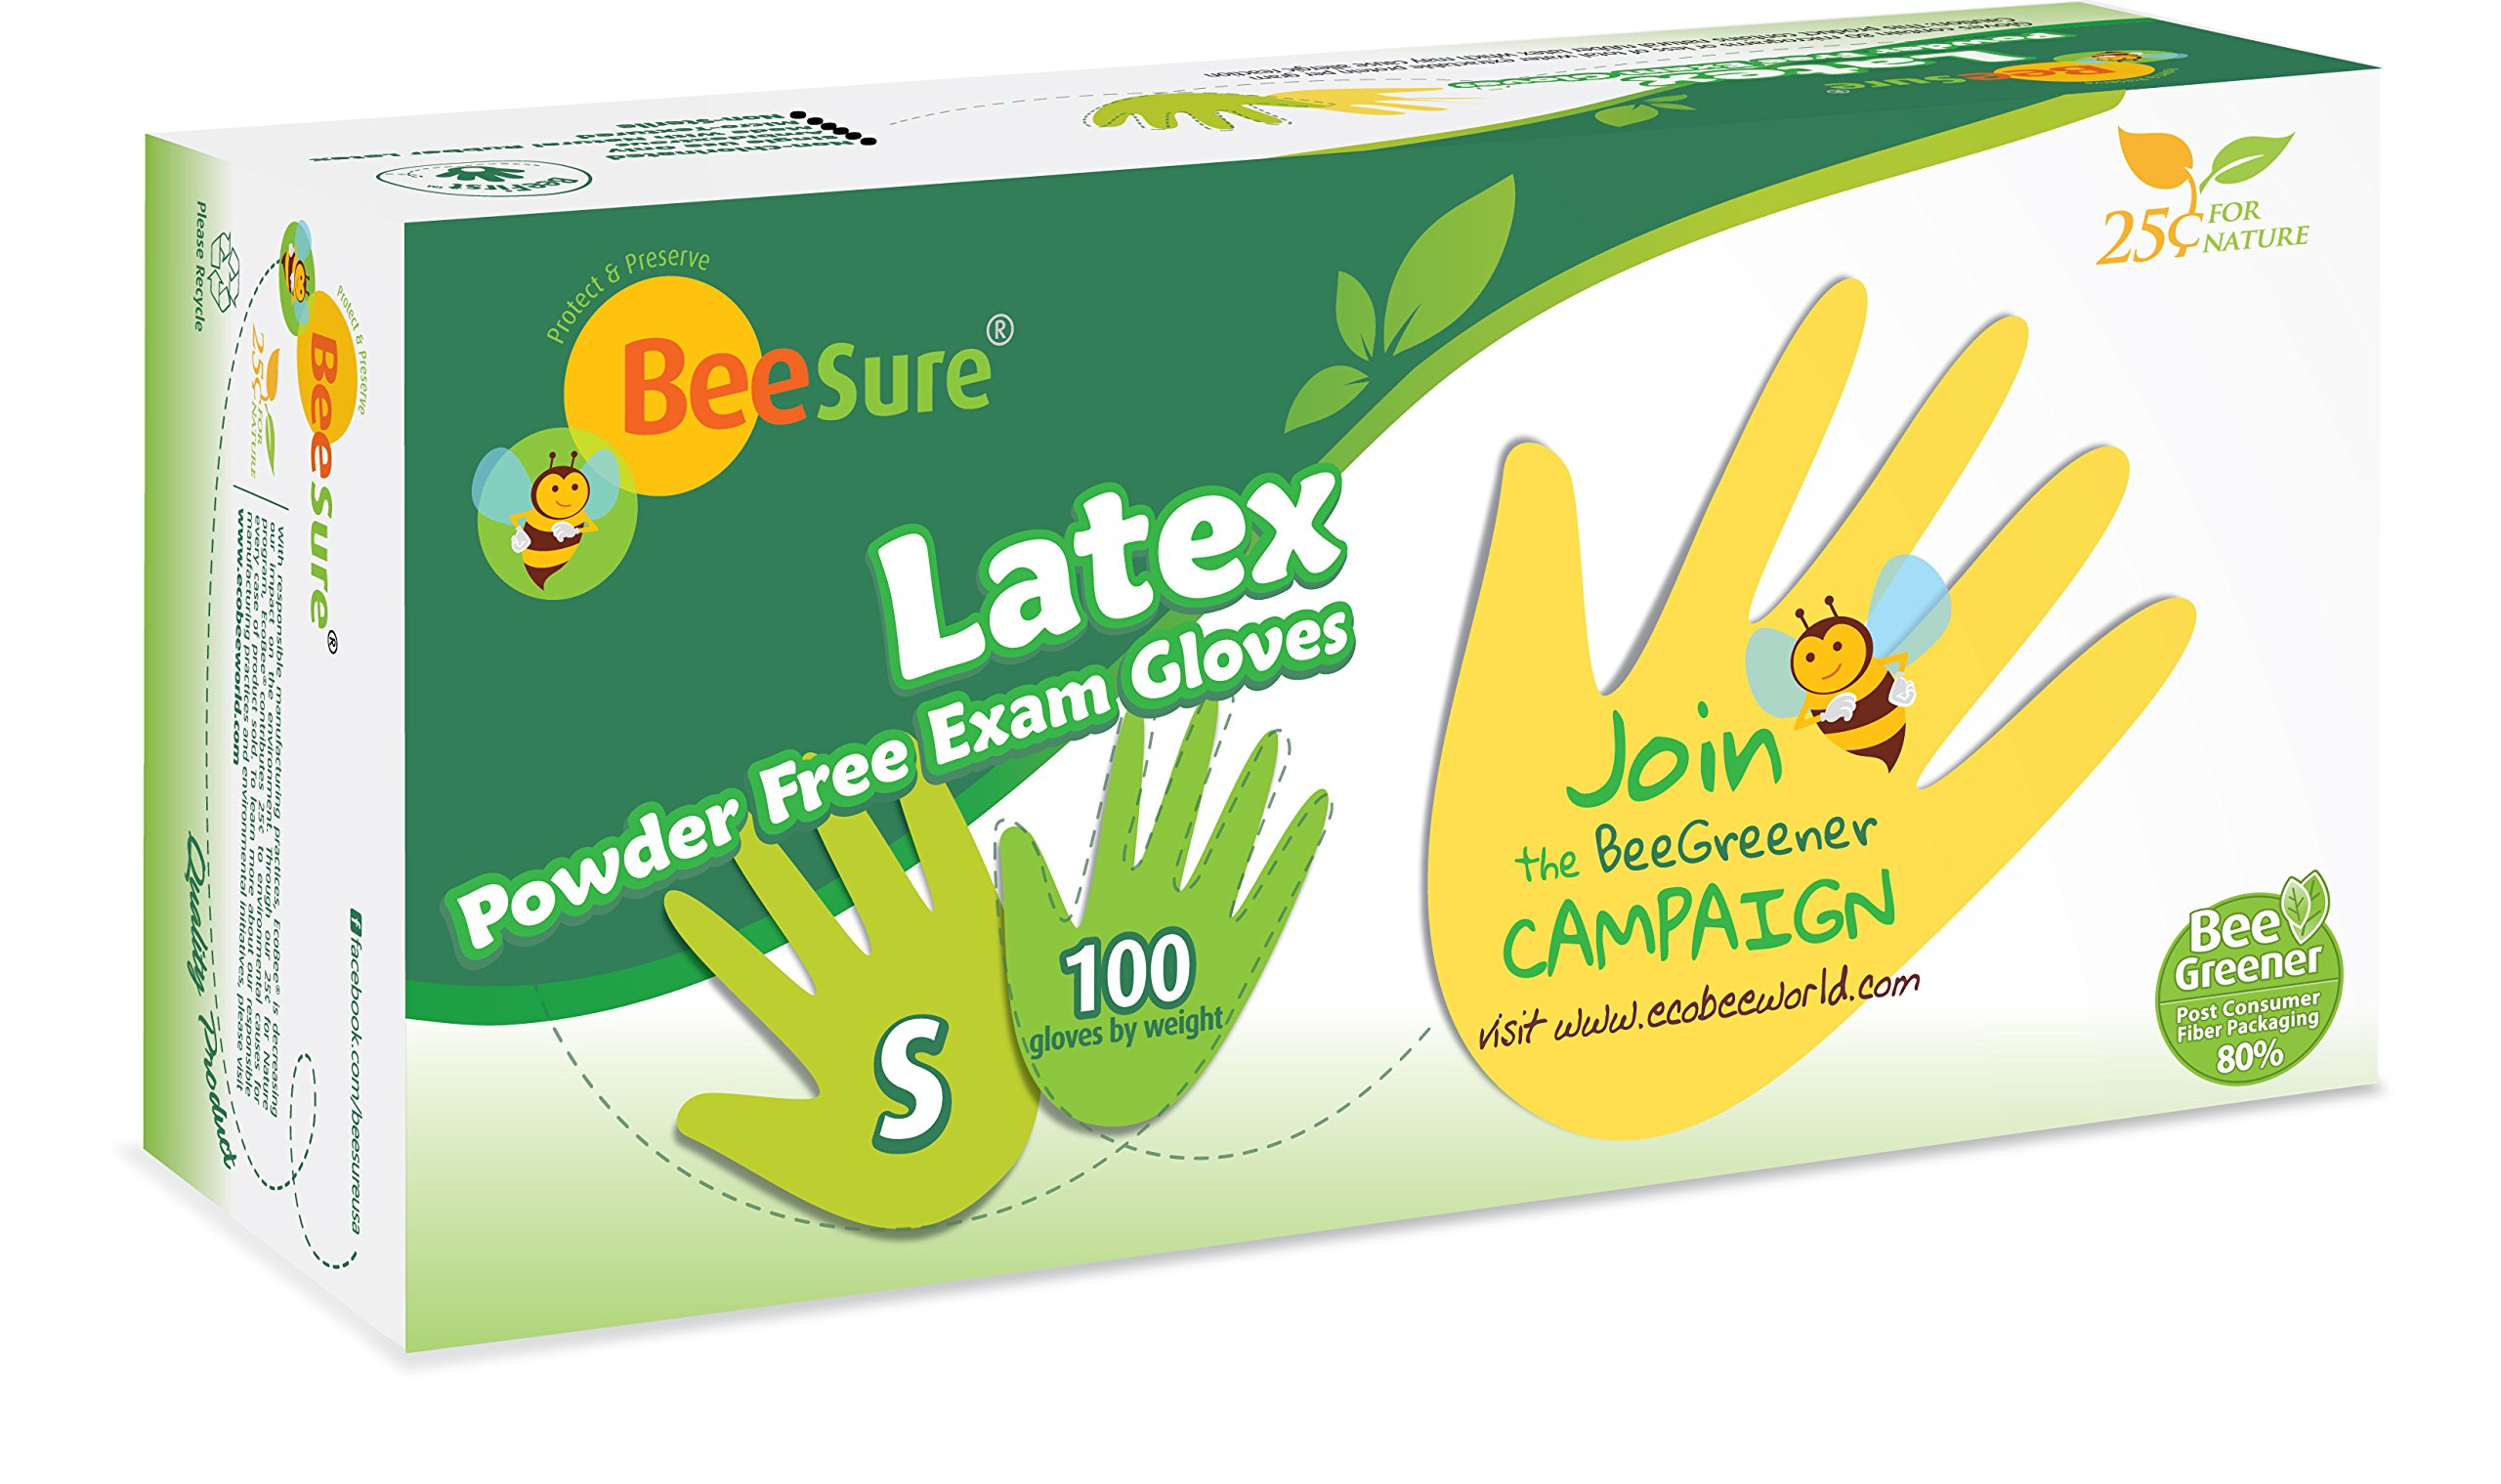 BeeSure BE2816case Powder Free Exam Gloves, Latex, Beaded-Cuff, Small, Yellow (Pack of 1000)